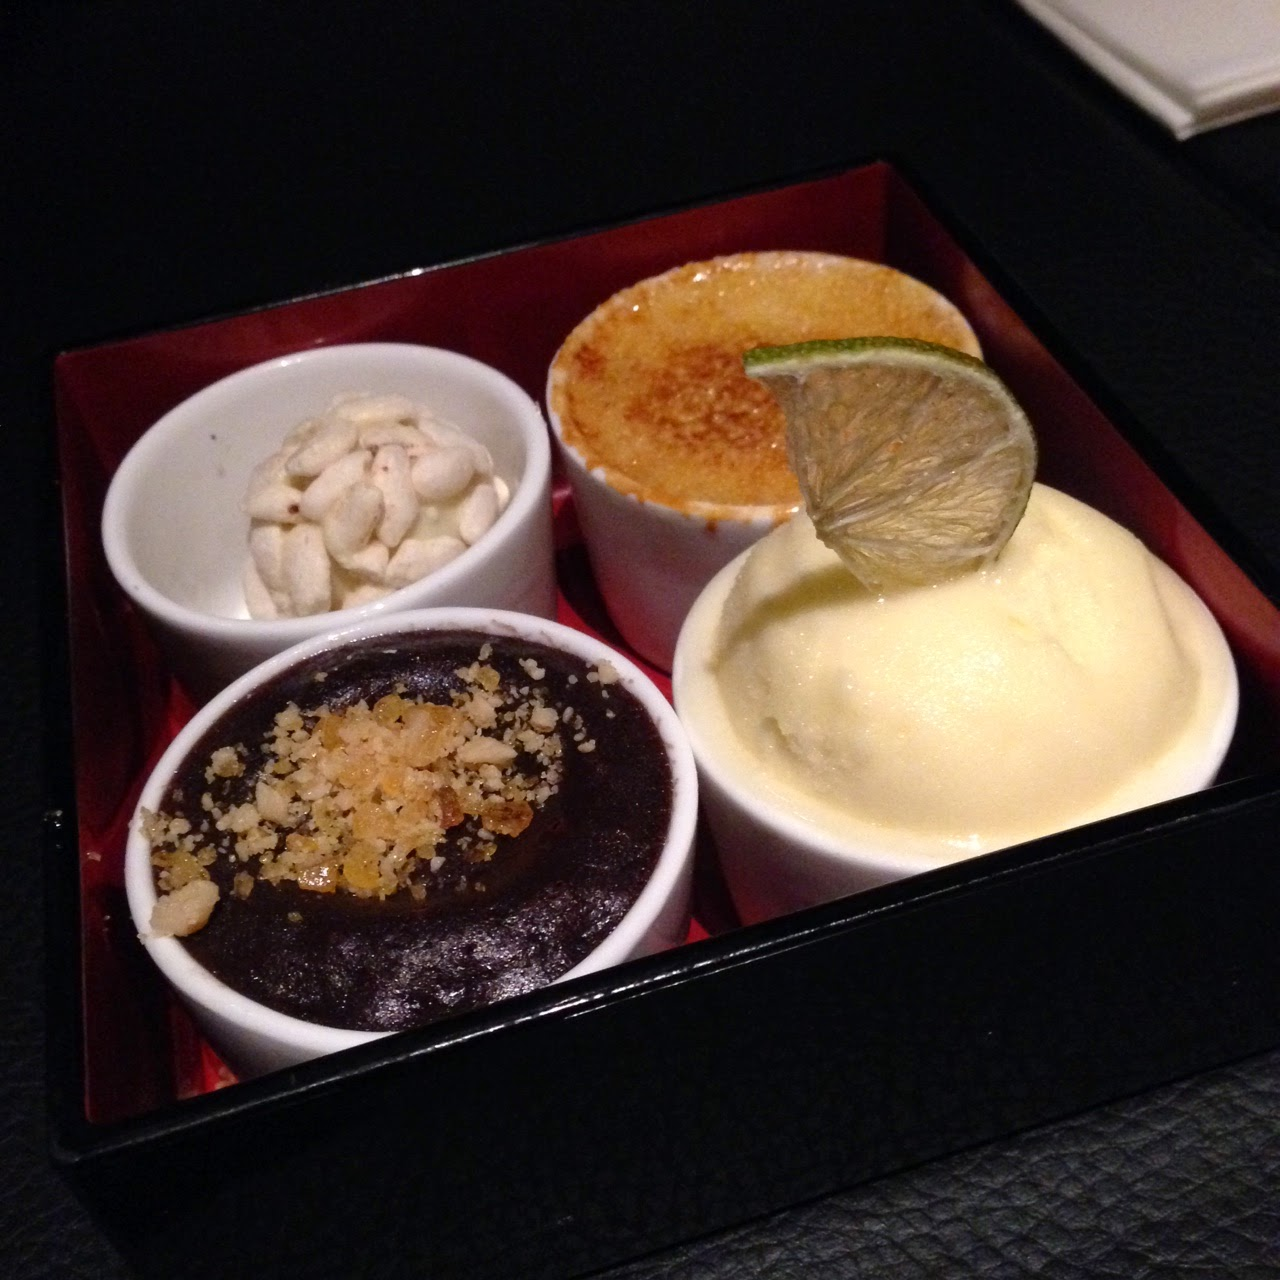 Sharing taster pudding at Sticks'N'Sushi